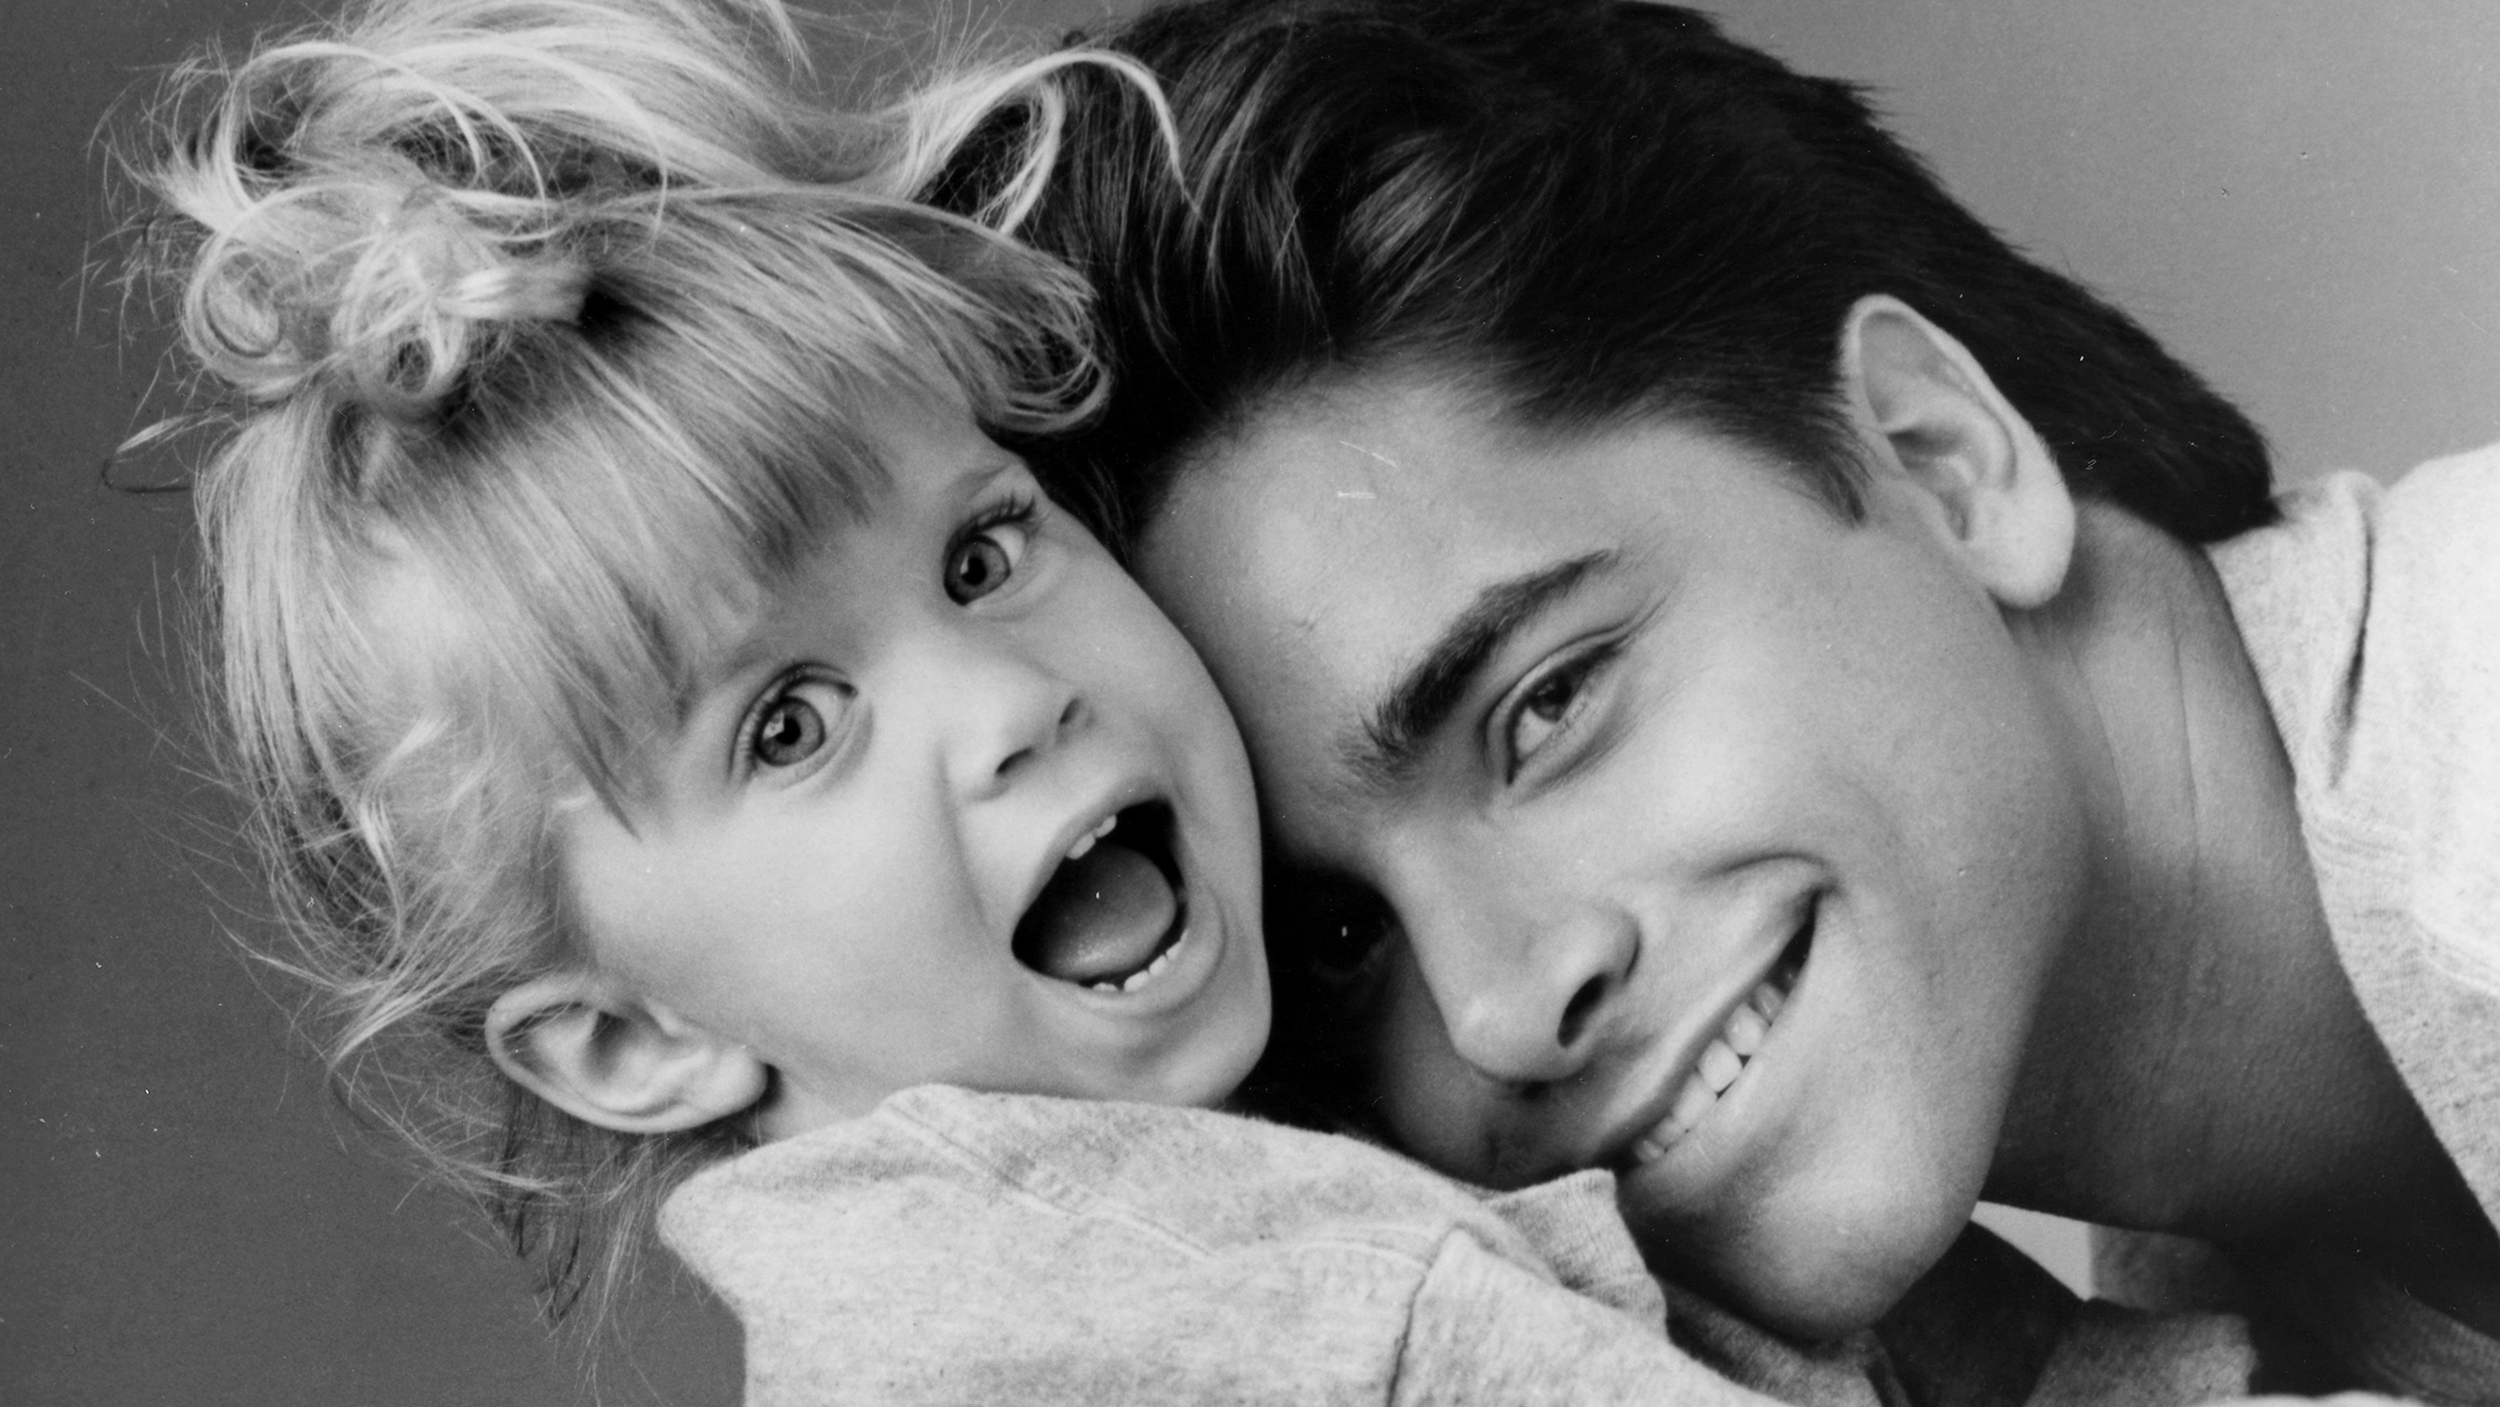 Olsen twins on 2nd season of 'Fuller House'? Why John ...